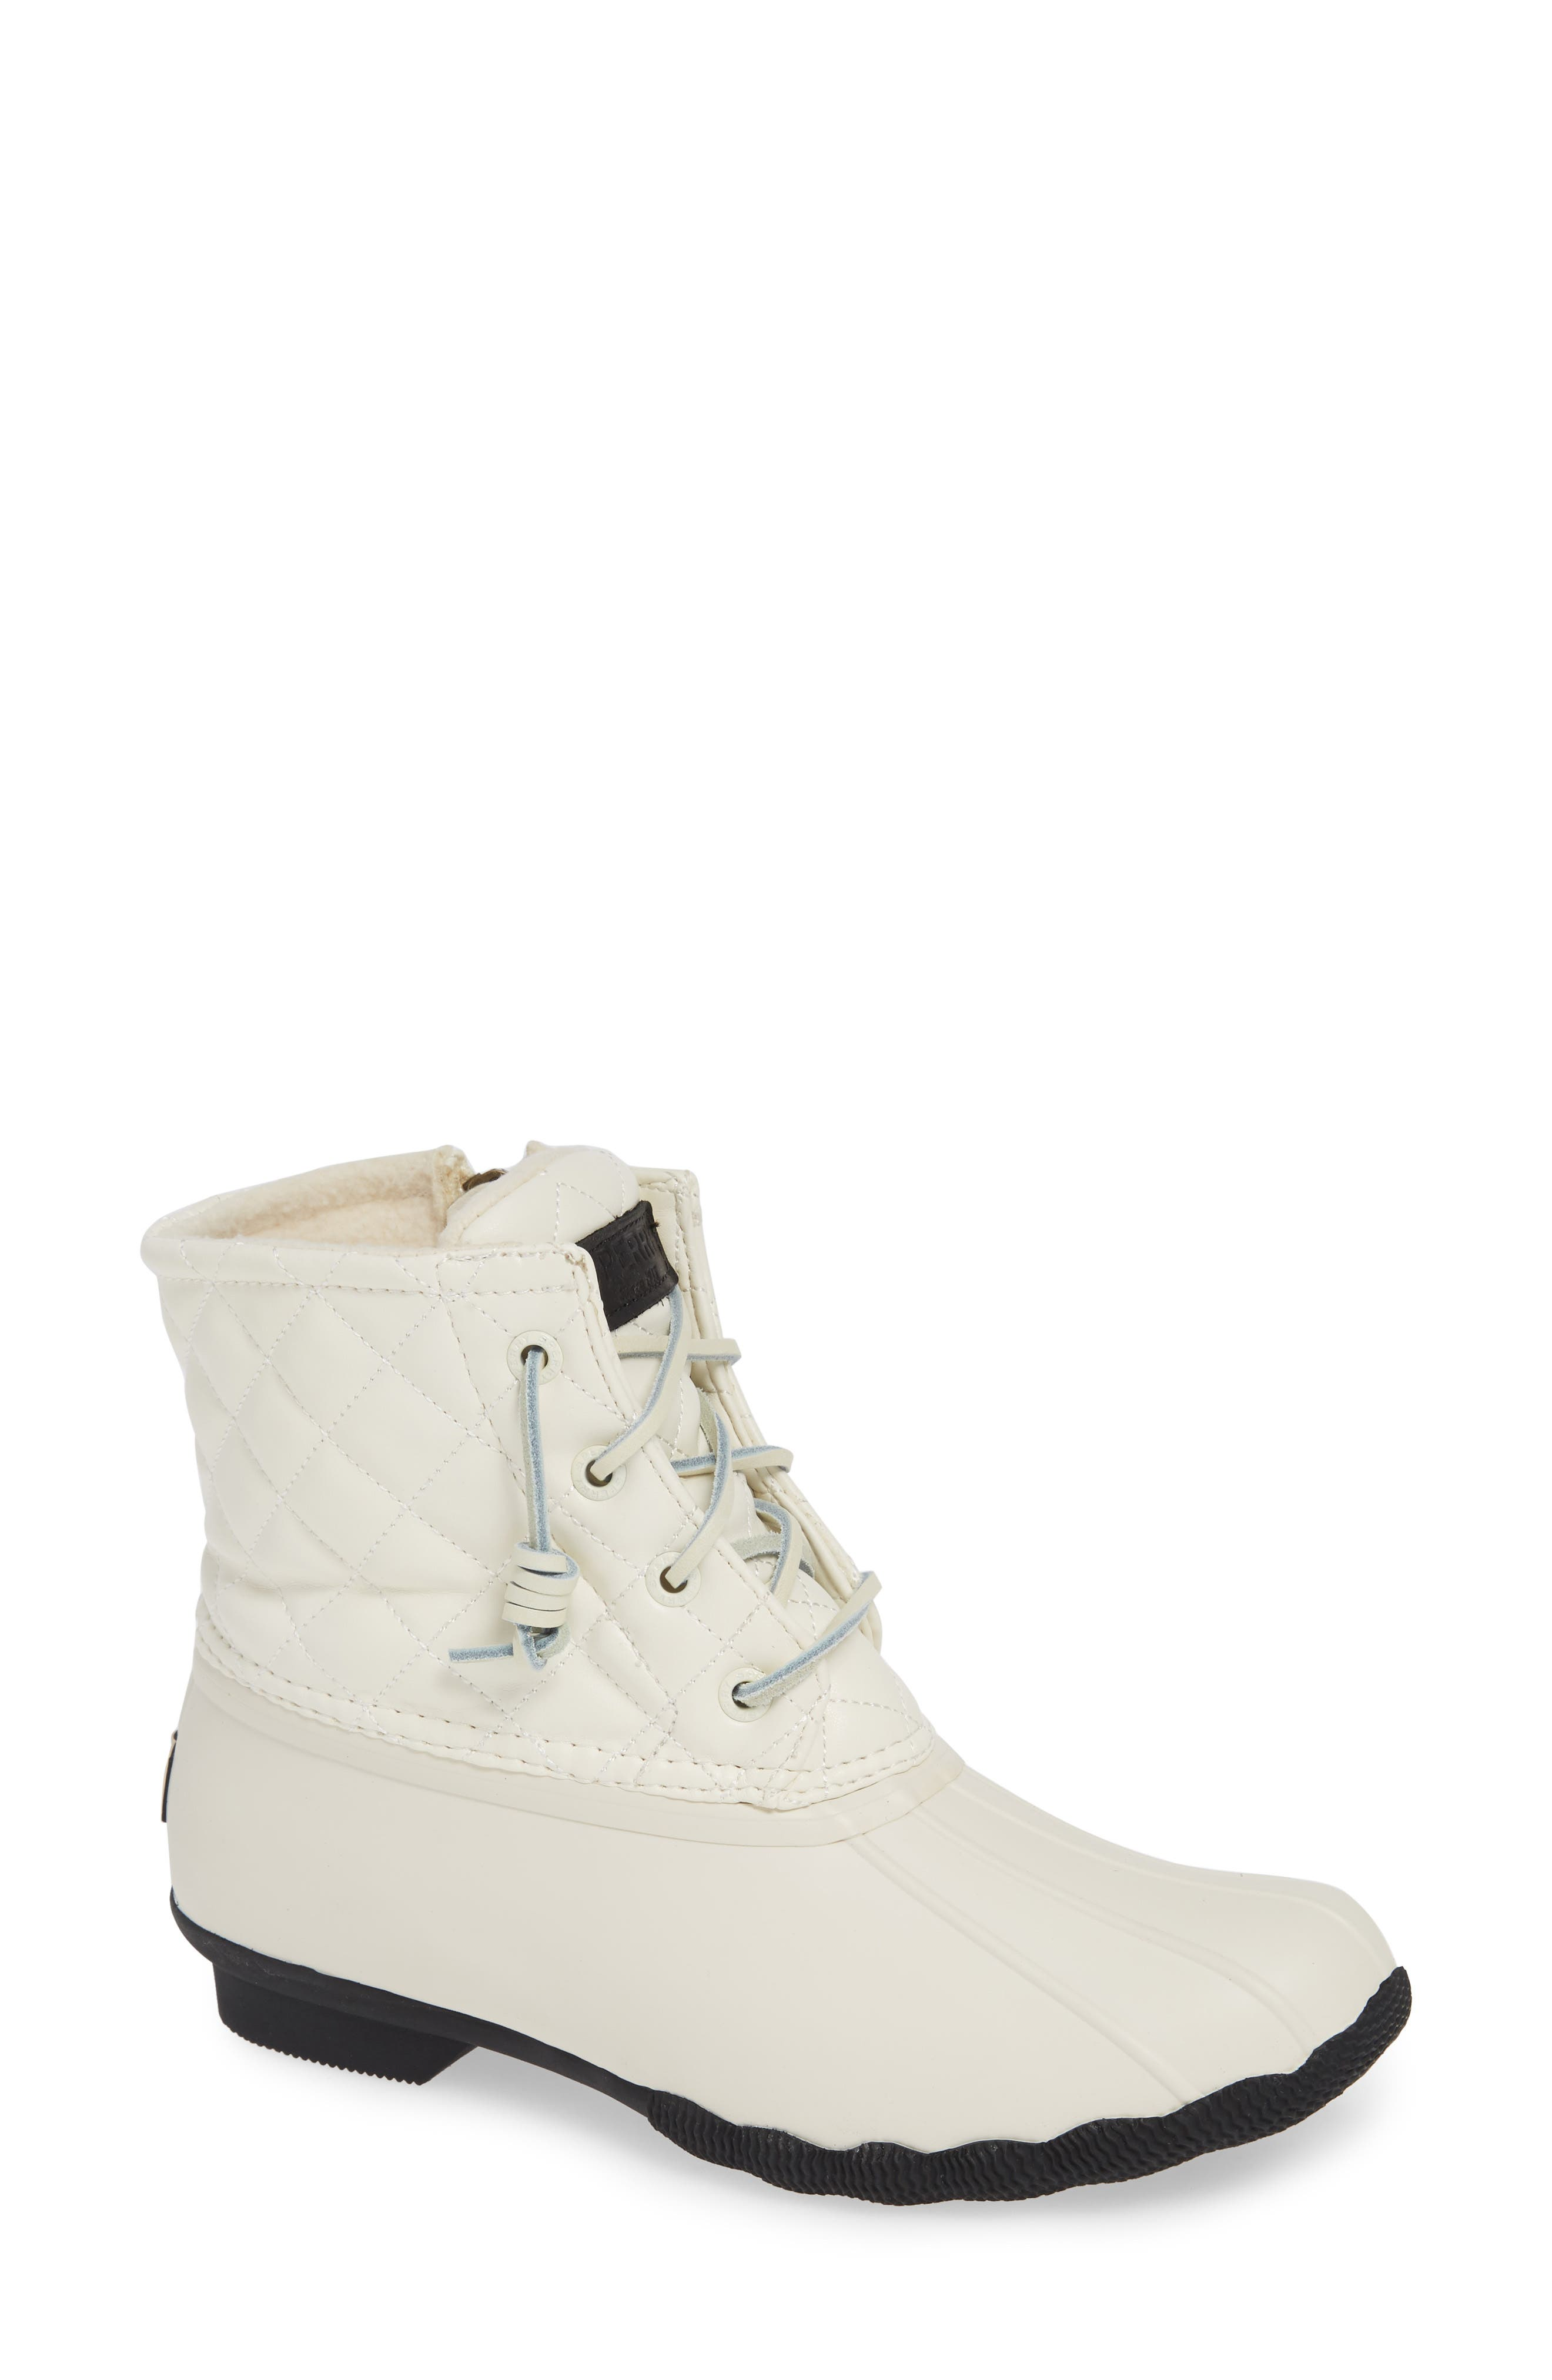 Quilted Luxe Saltwater Waterproof Bootie,                             Main thumbnail 1, color,                             IVORY